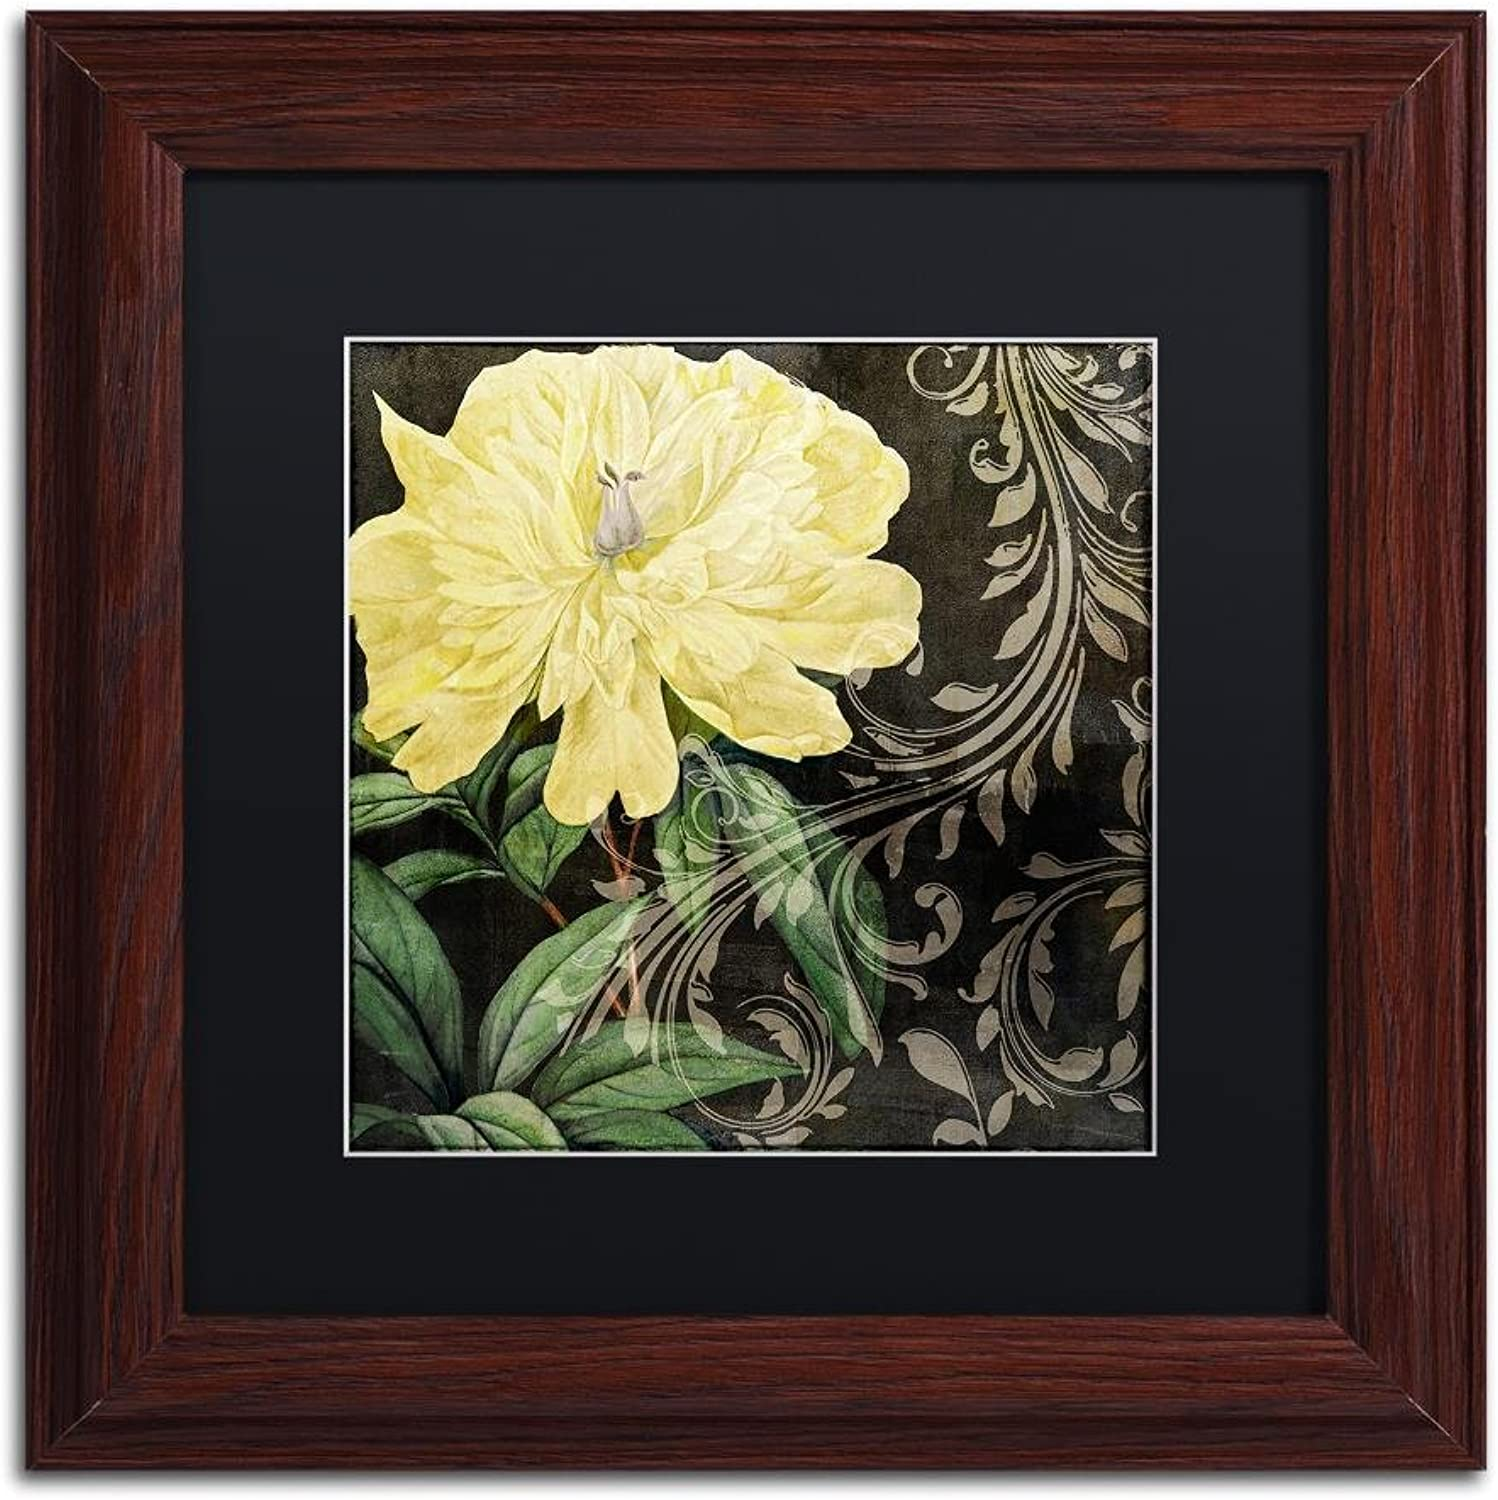 Trademark Fine Art Ode to Yellow I by color Bakery, Black Matte, Wood Frame 11x11, Wall Art